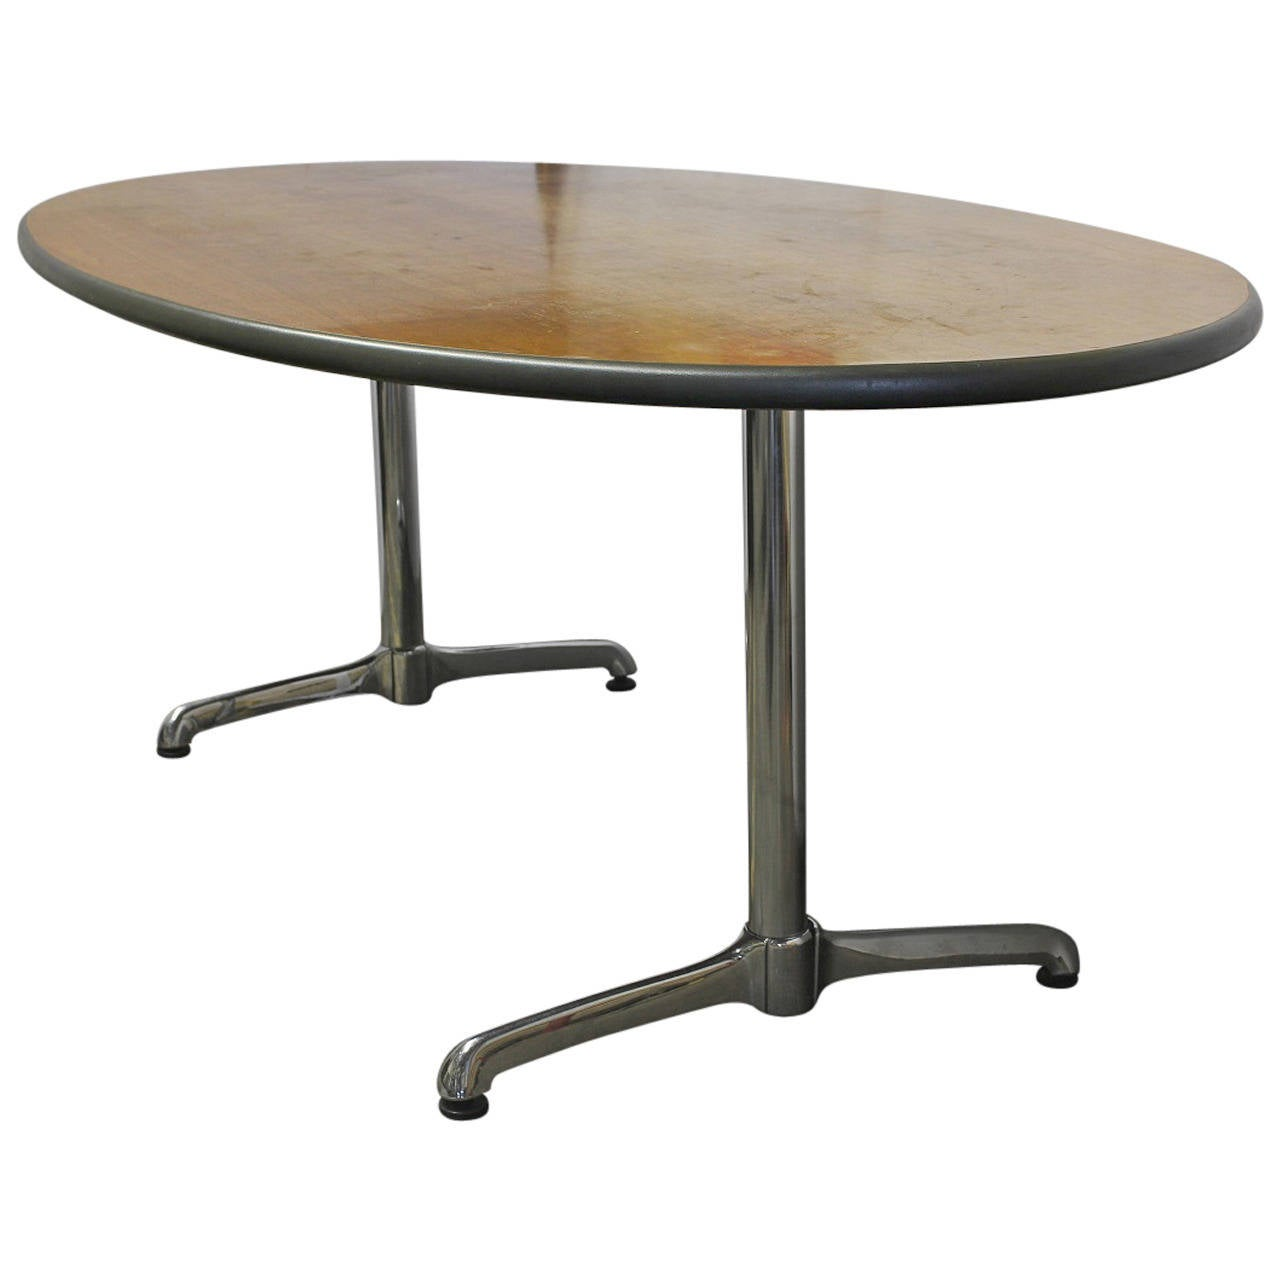 Long Oval Dining Table or Desk by Herman Miller